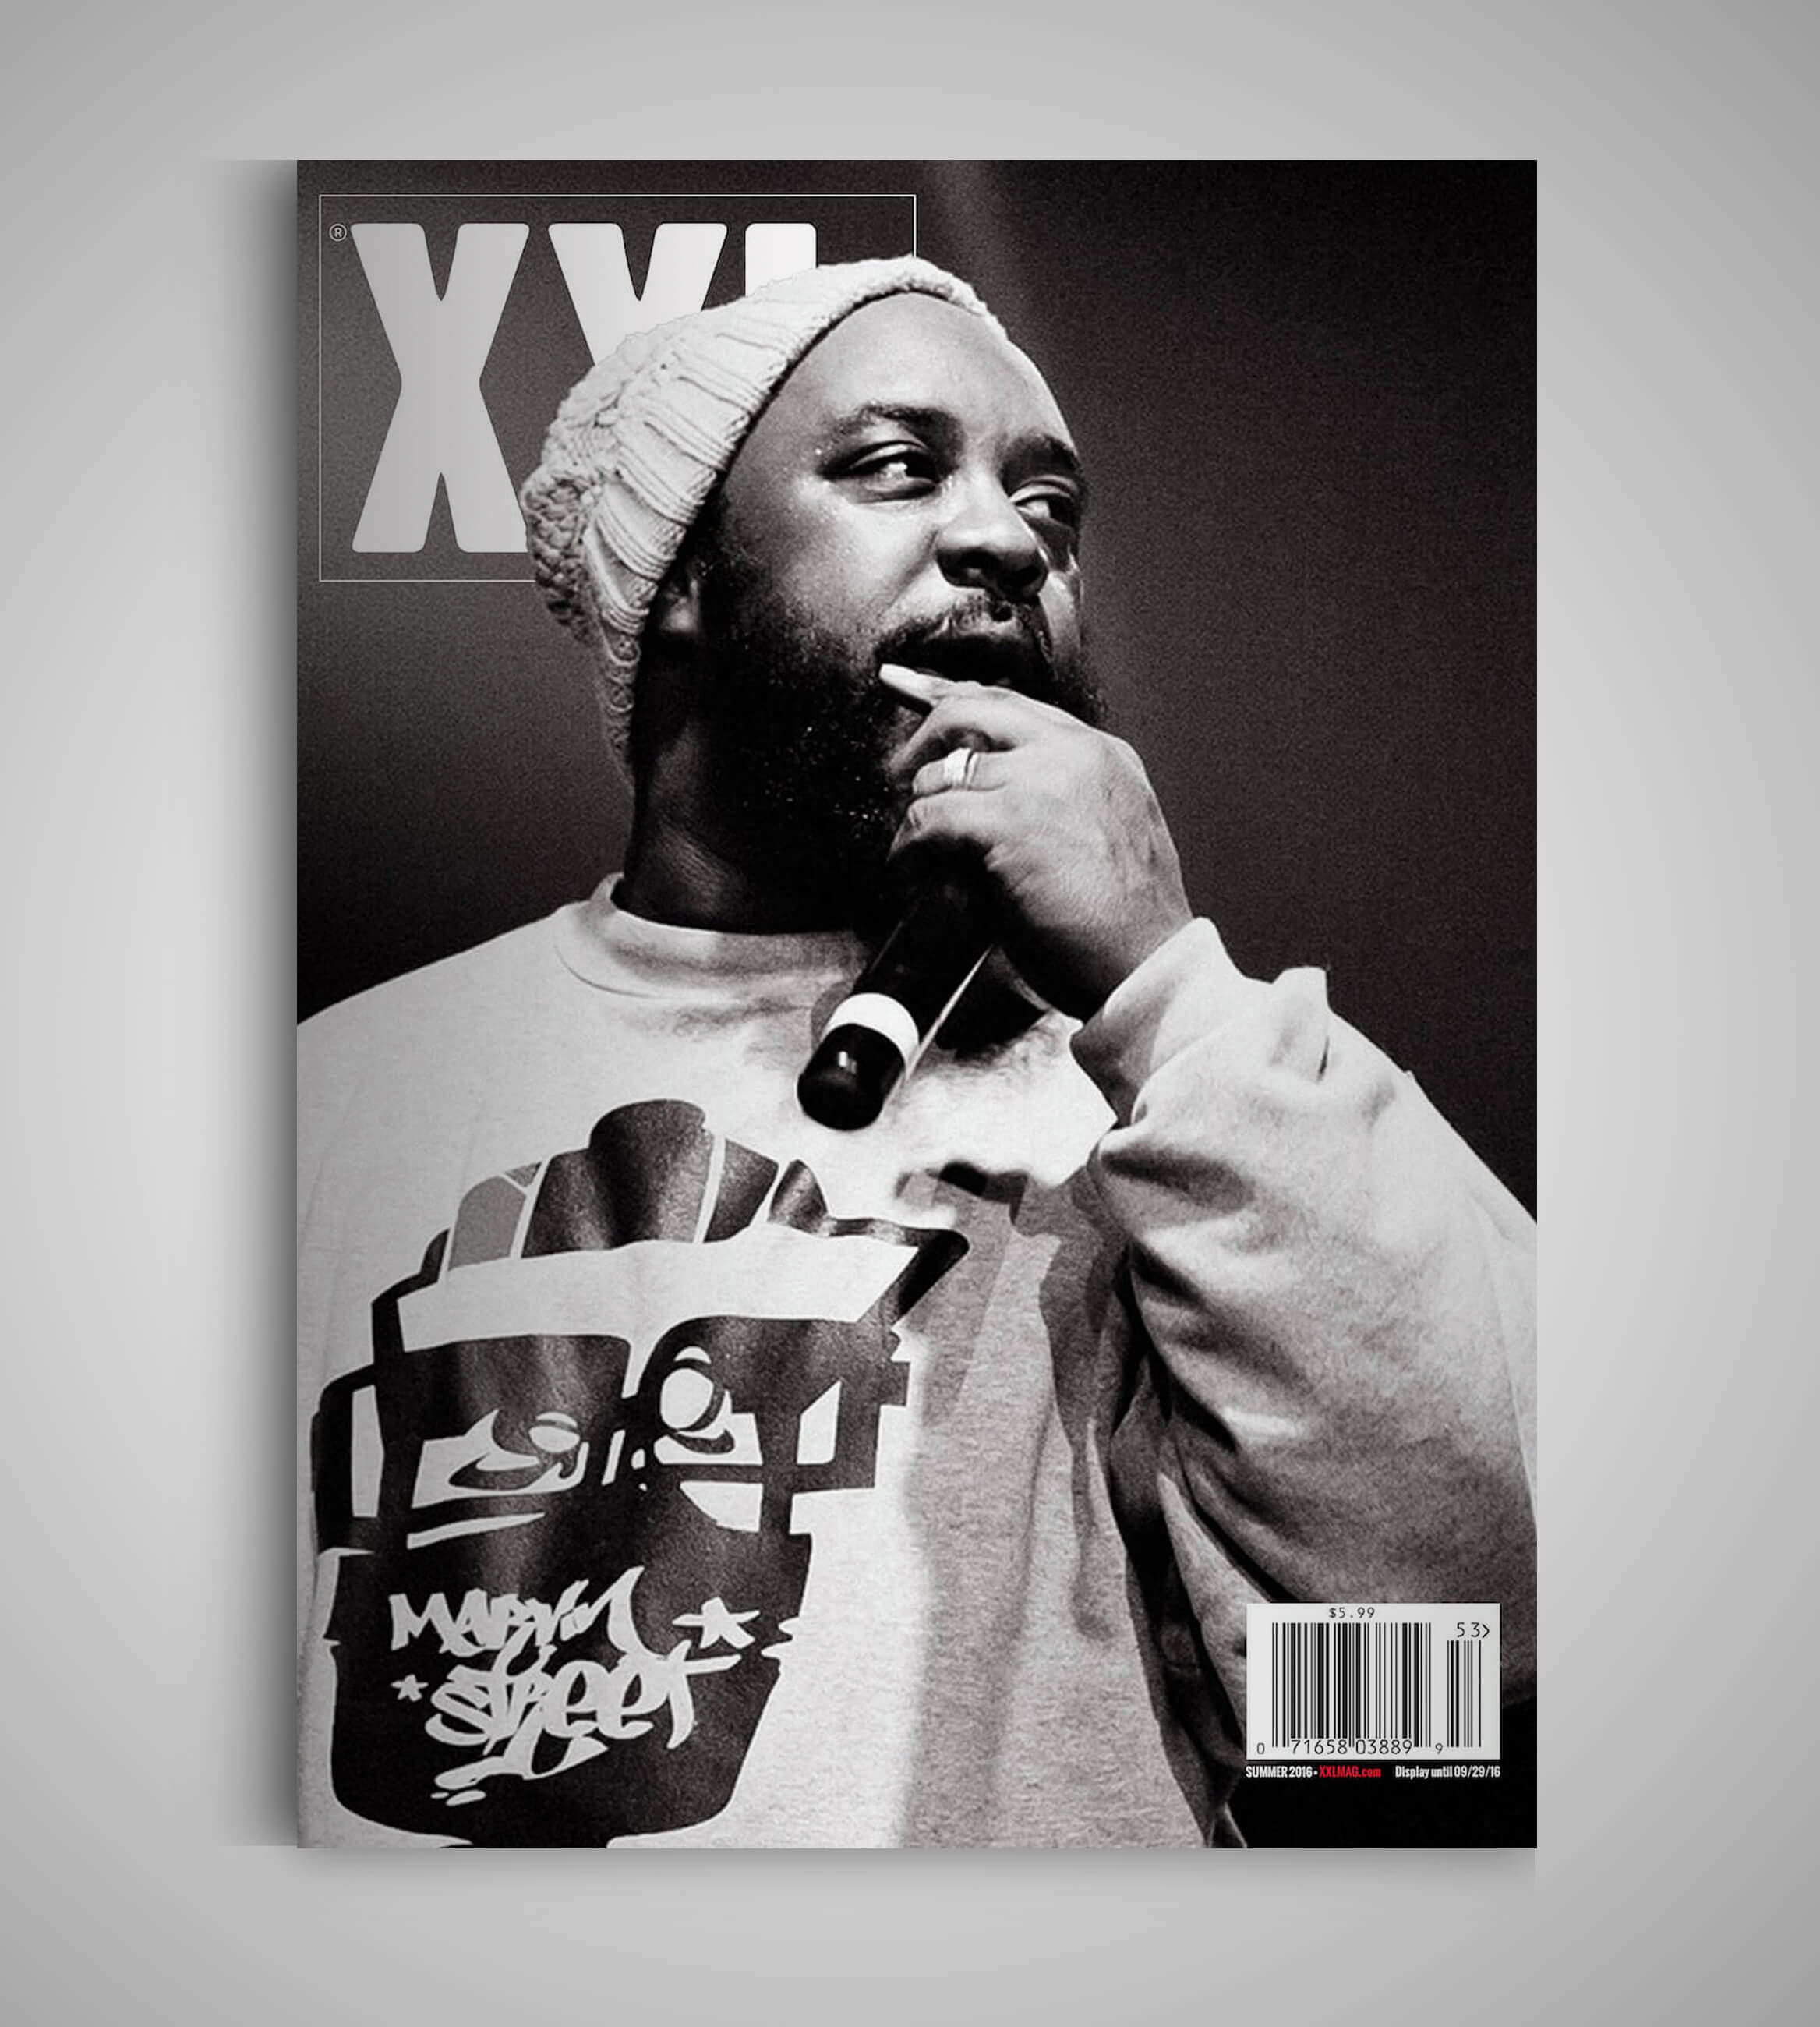 XXL Magazine Covers